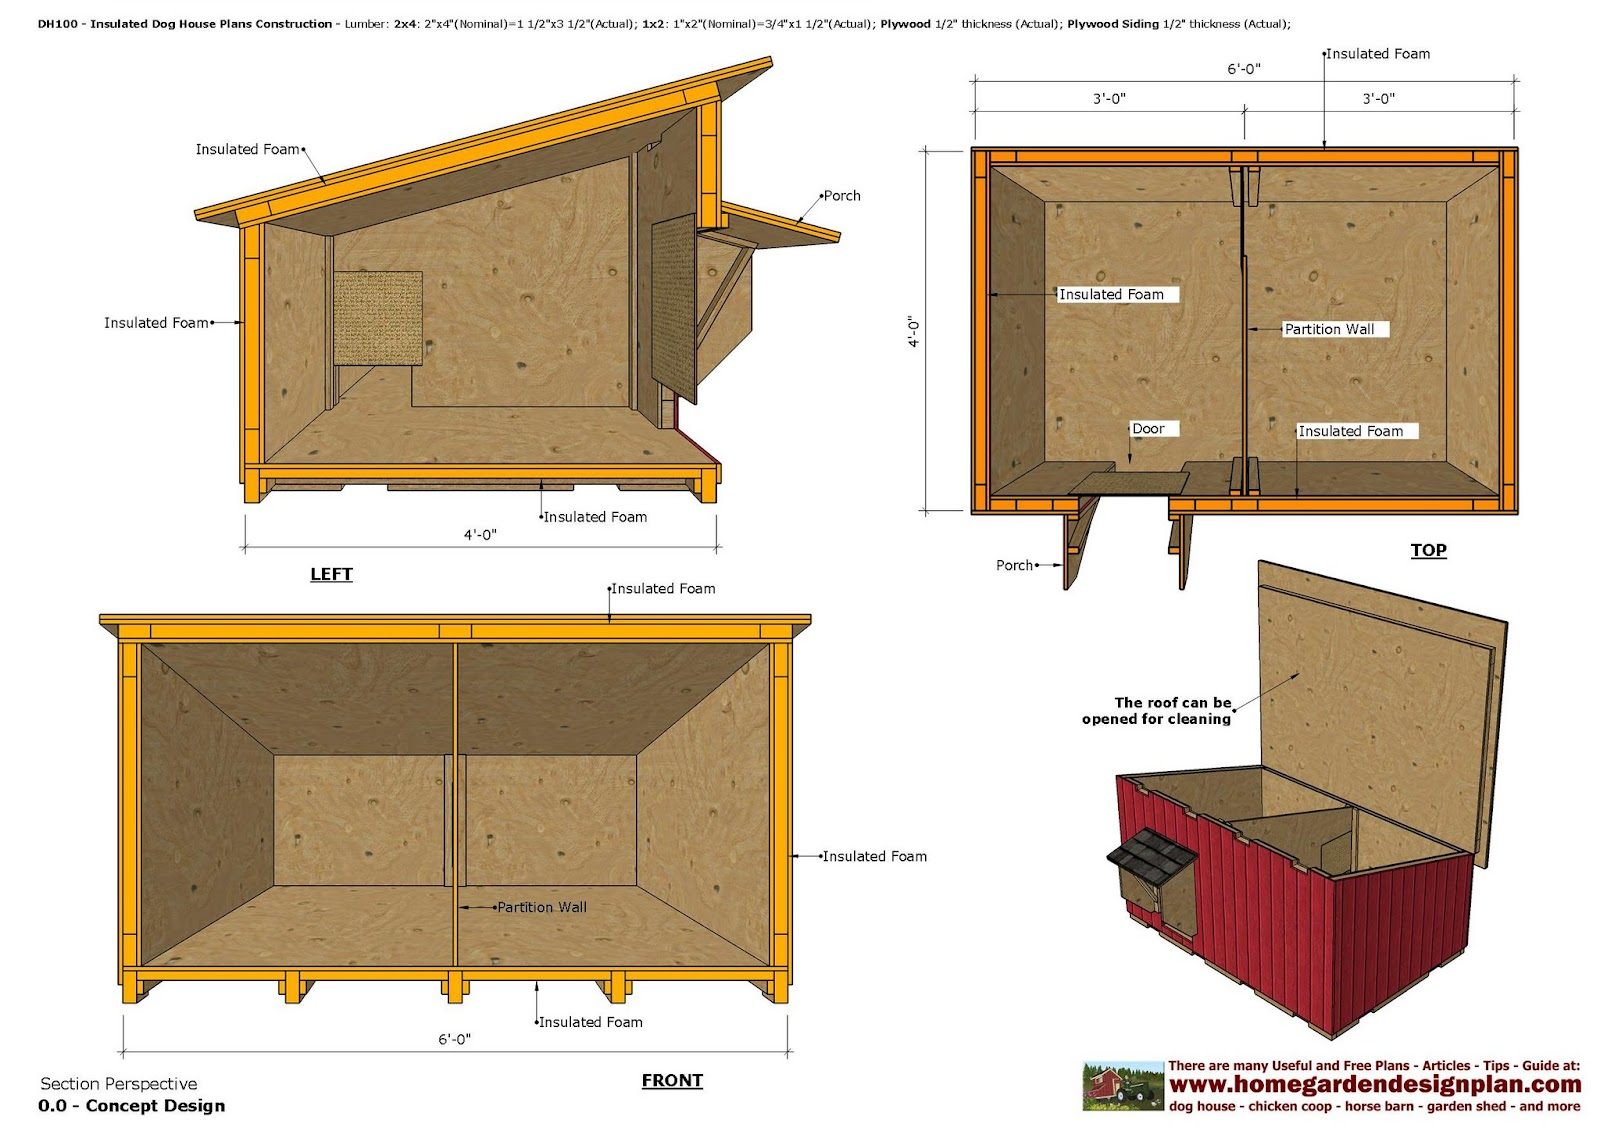 Home garden plans dh100 insulated dog house plans dog Custom build a house online